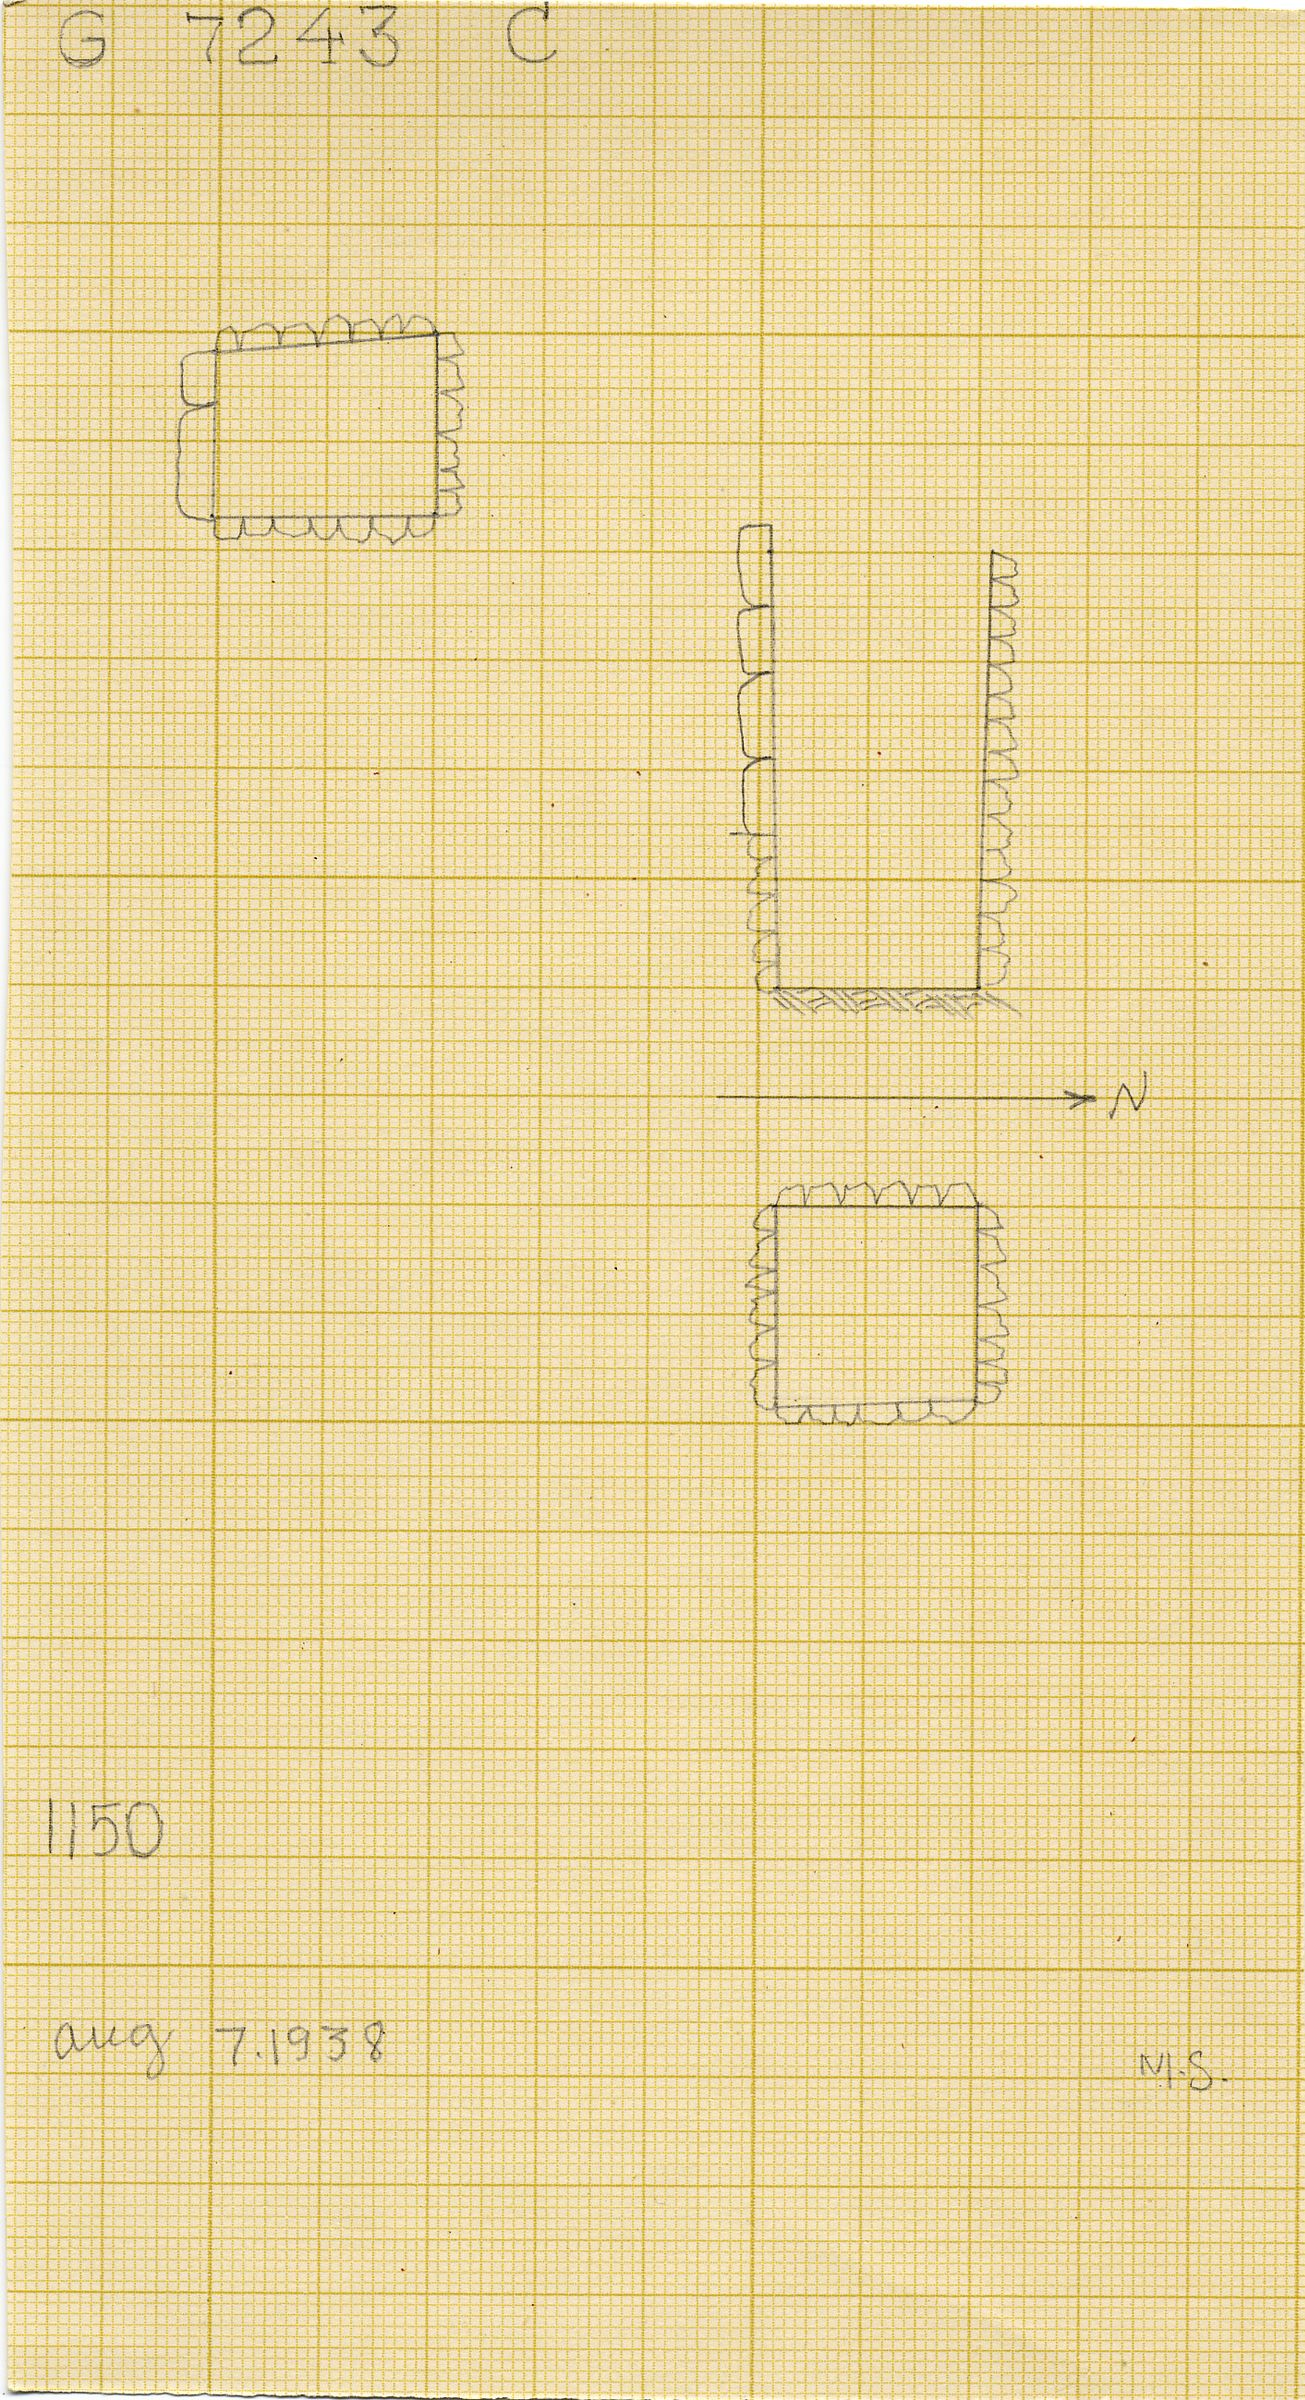 Maps and plans: G 7243, Shaft C